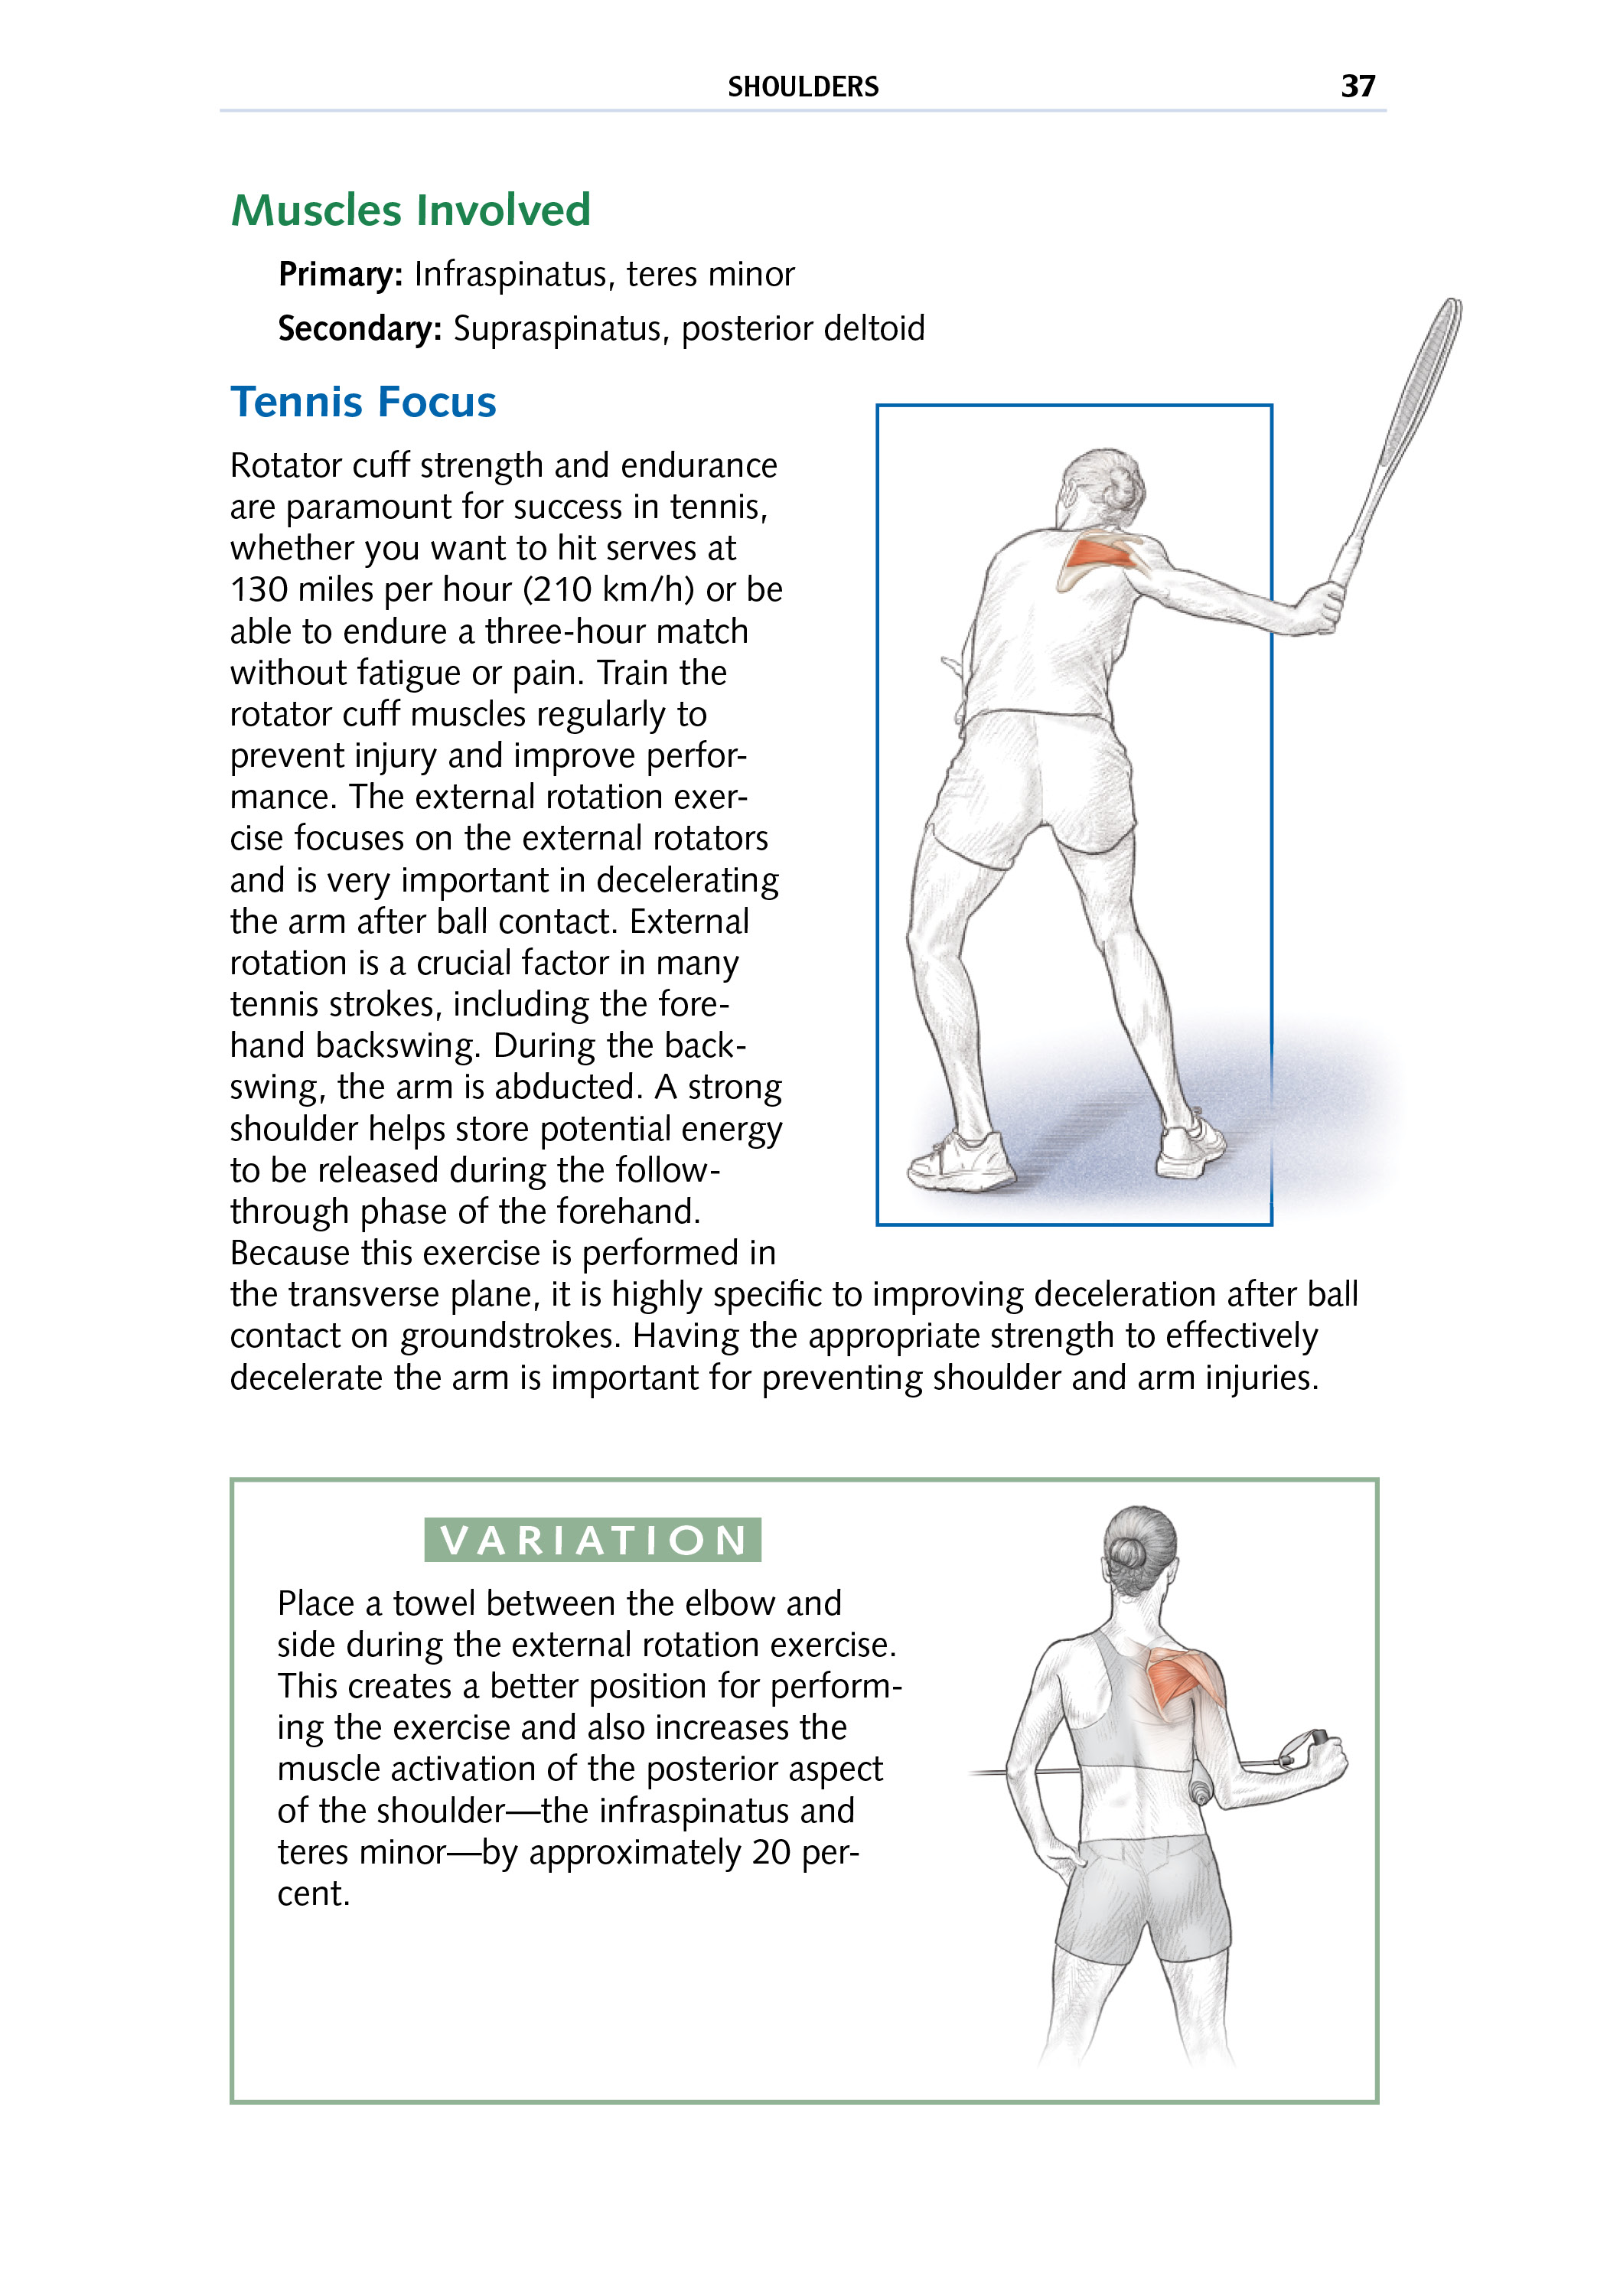 Tennis Focus: Shoulders